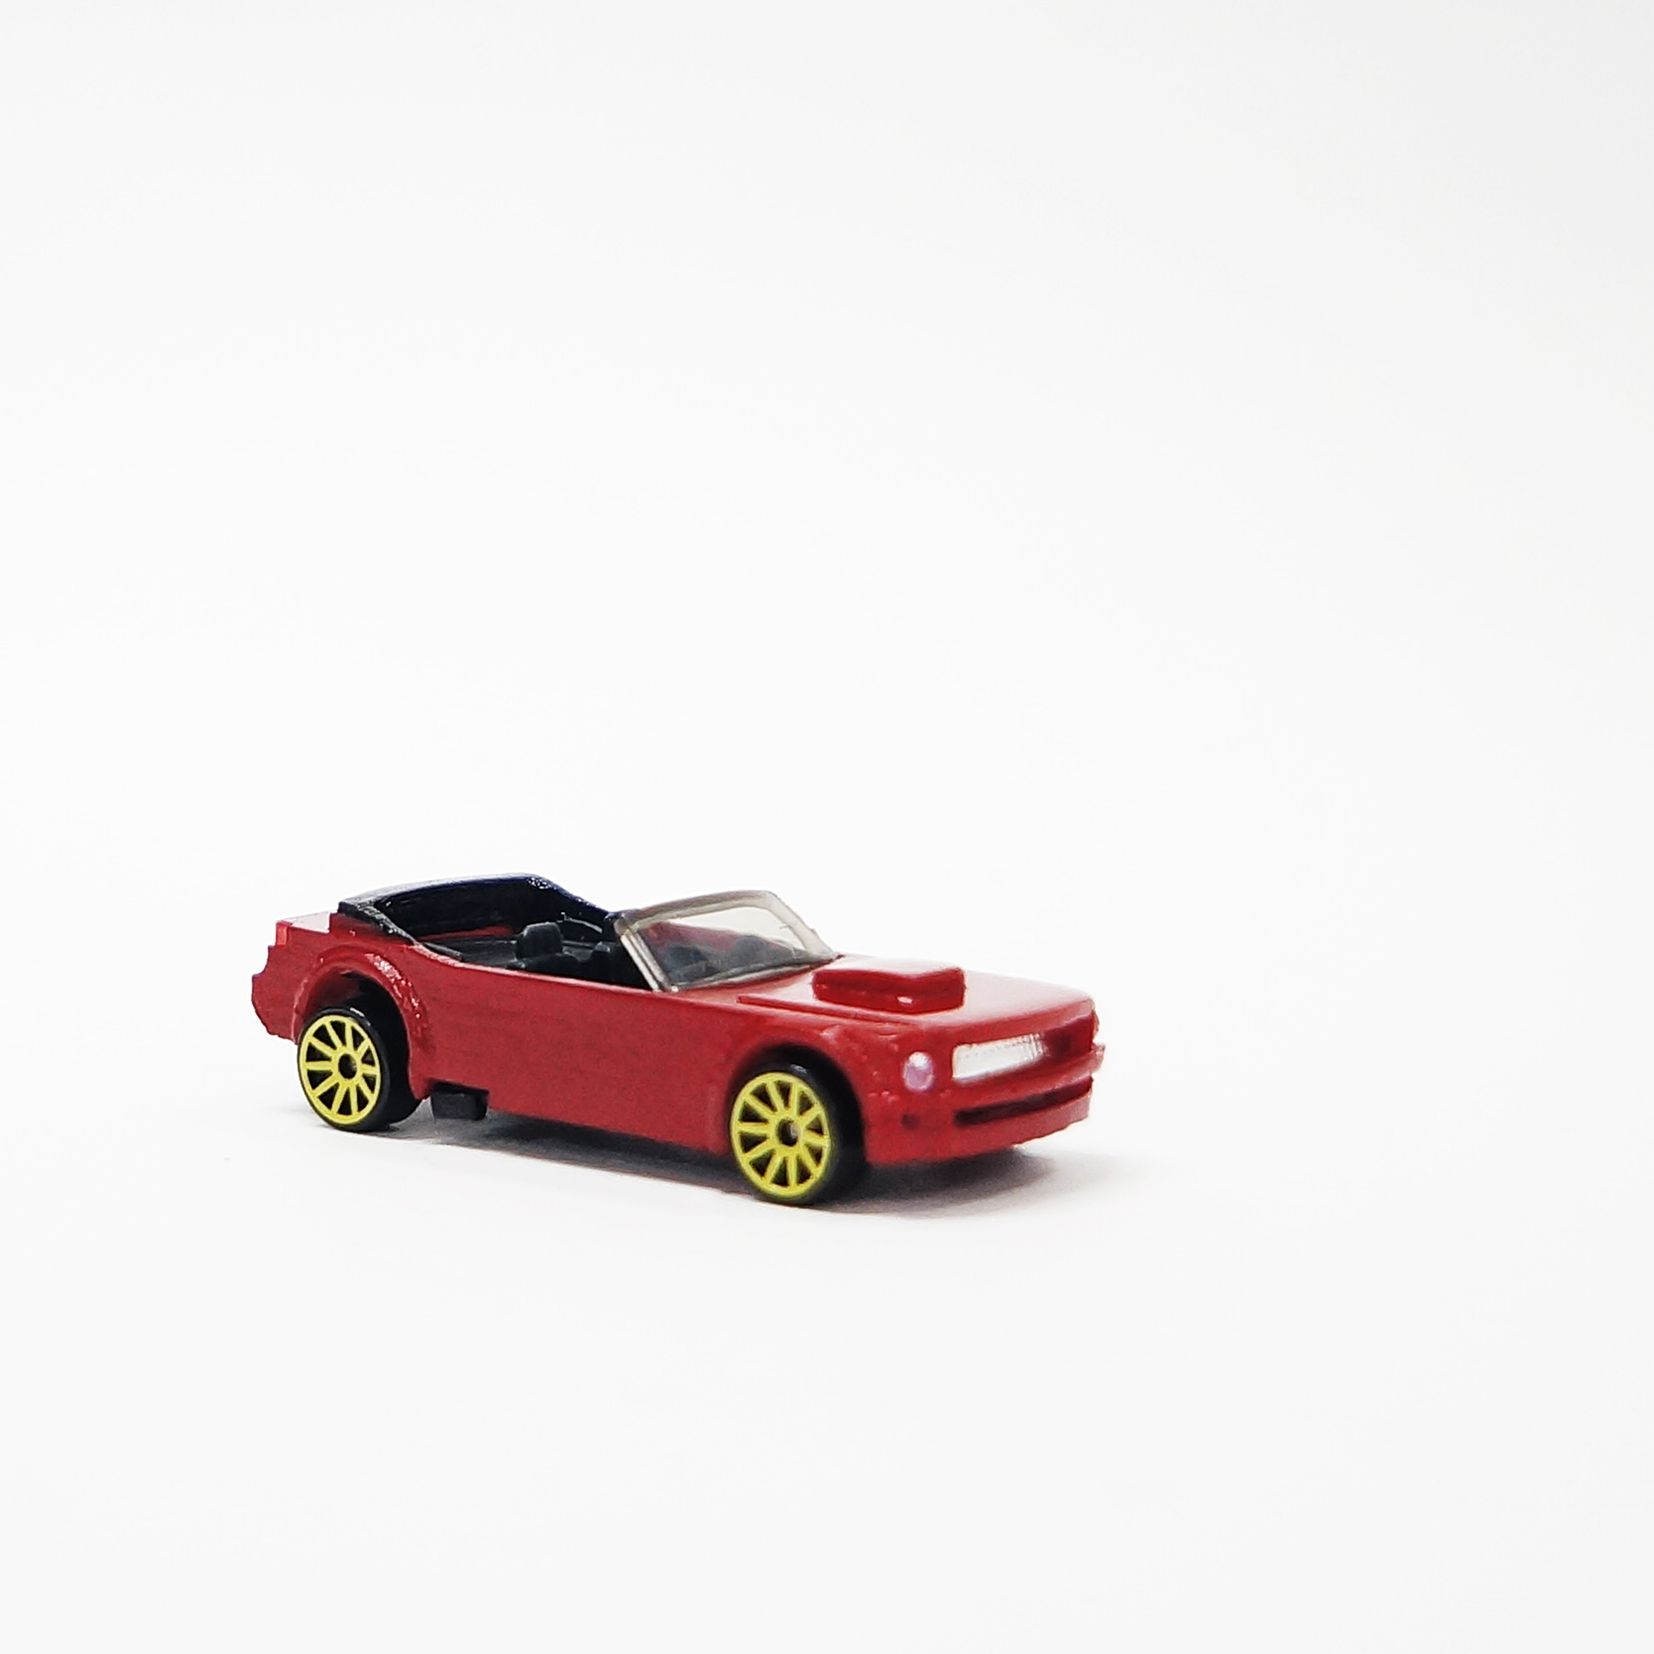 [Toy Car] 3D printing model by Azzahra Deaviera (batch 2014, UPH Product Design)